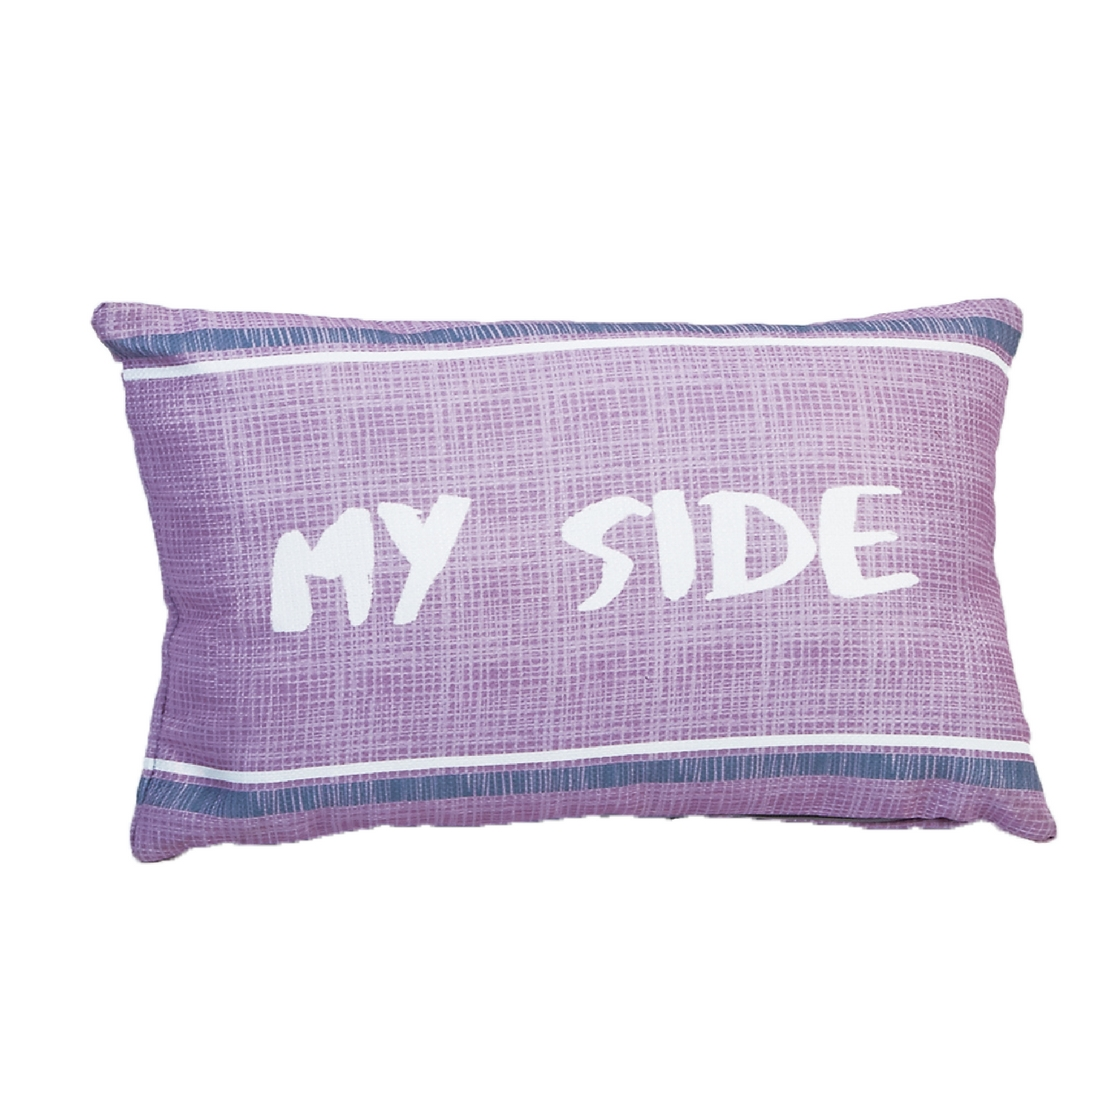 Dexter Lilac Cushion